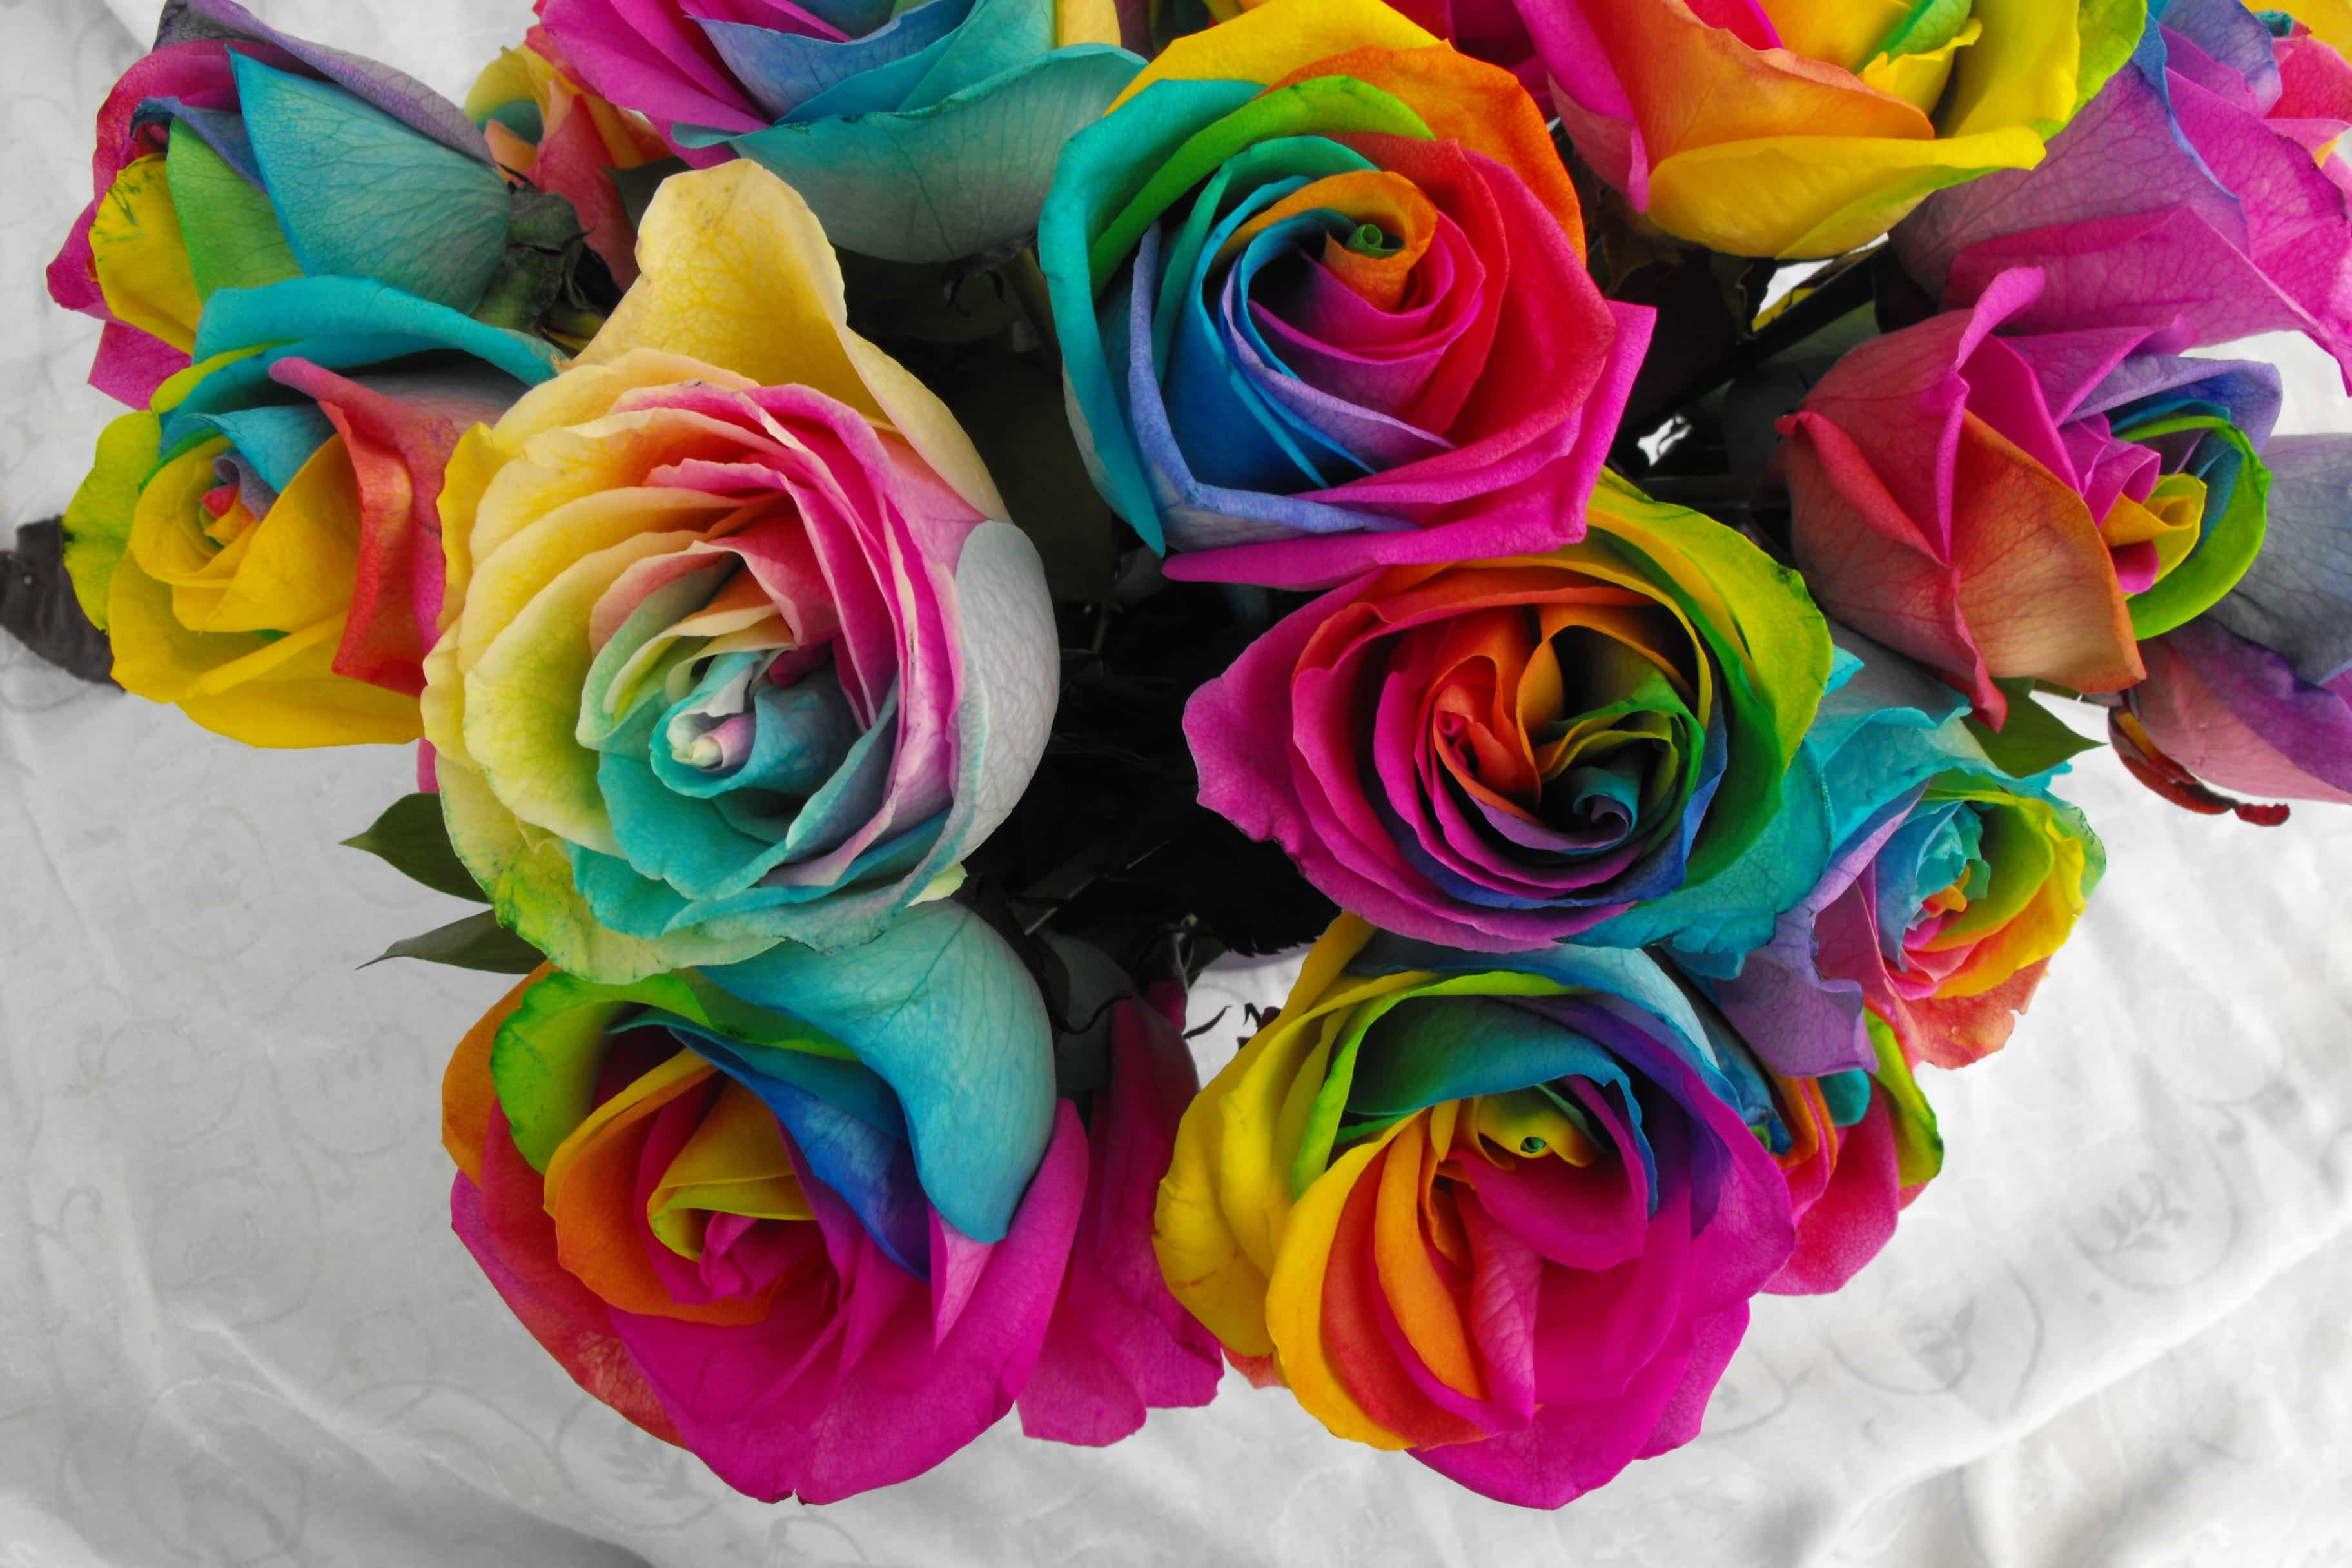 Rainbow roses buy the nursery rainbow rose seeds online at for Growing rainbow roses from seeds